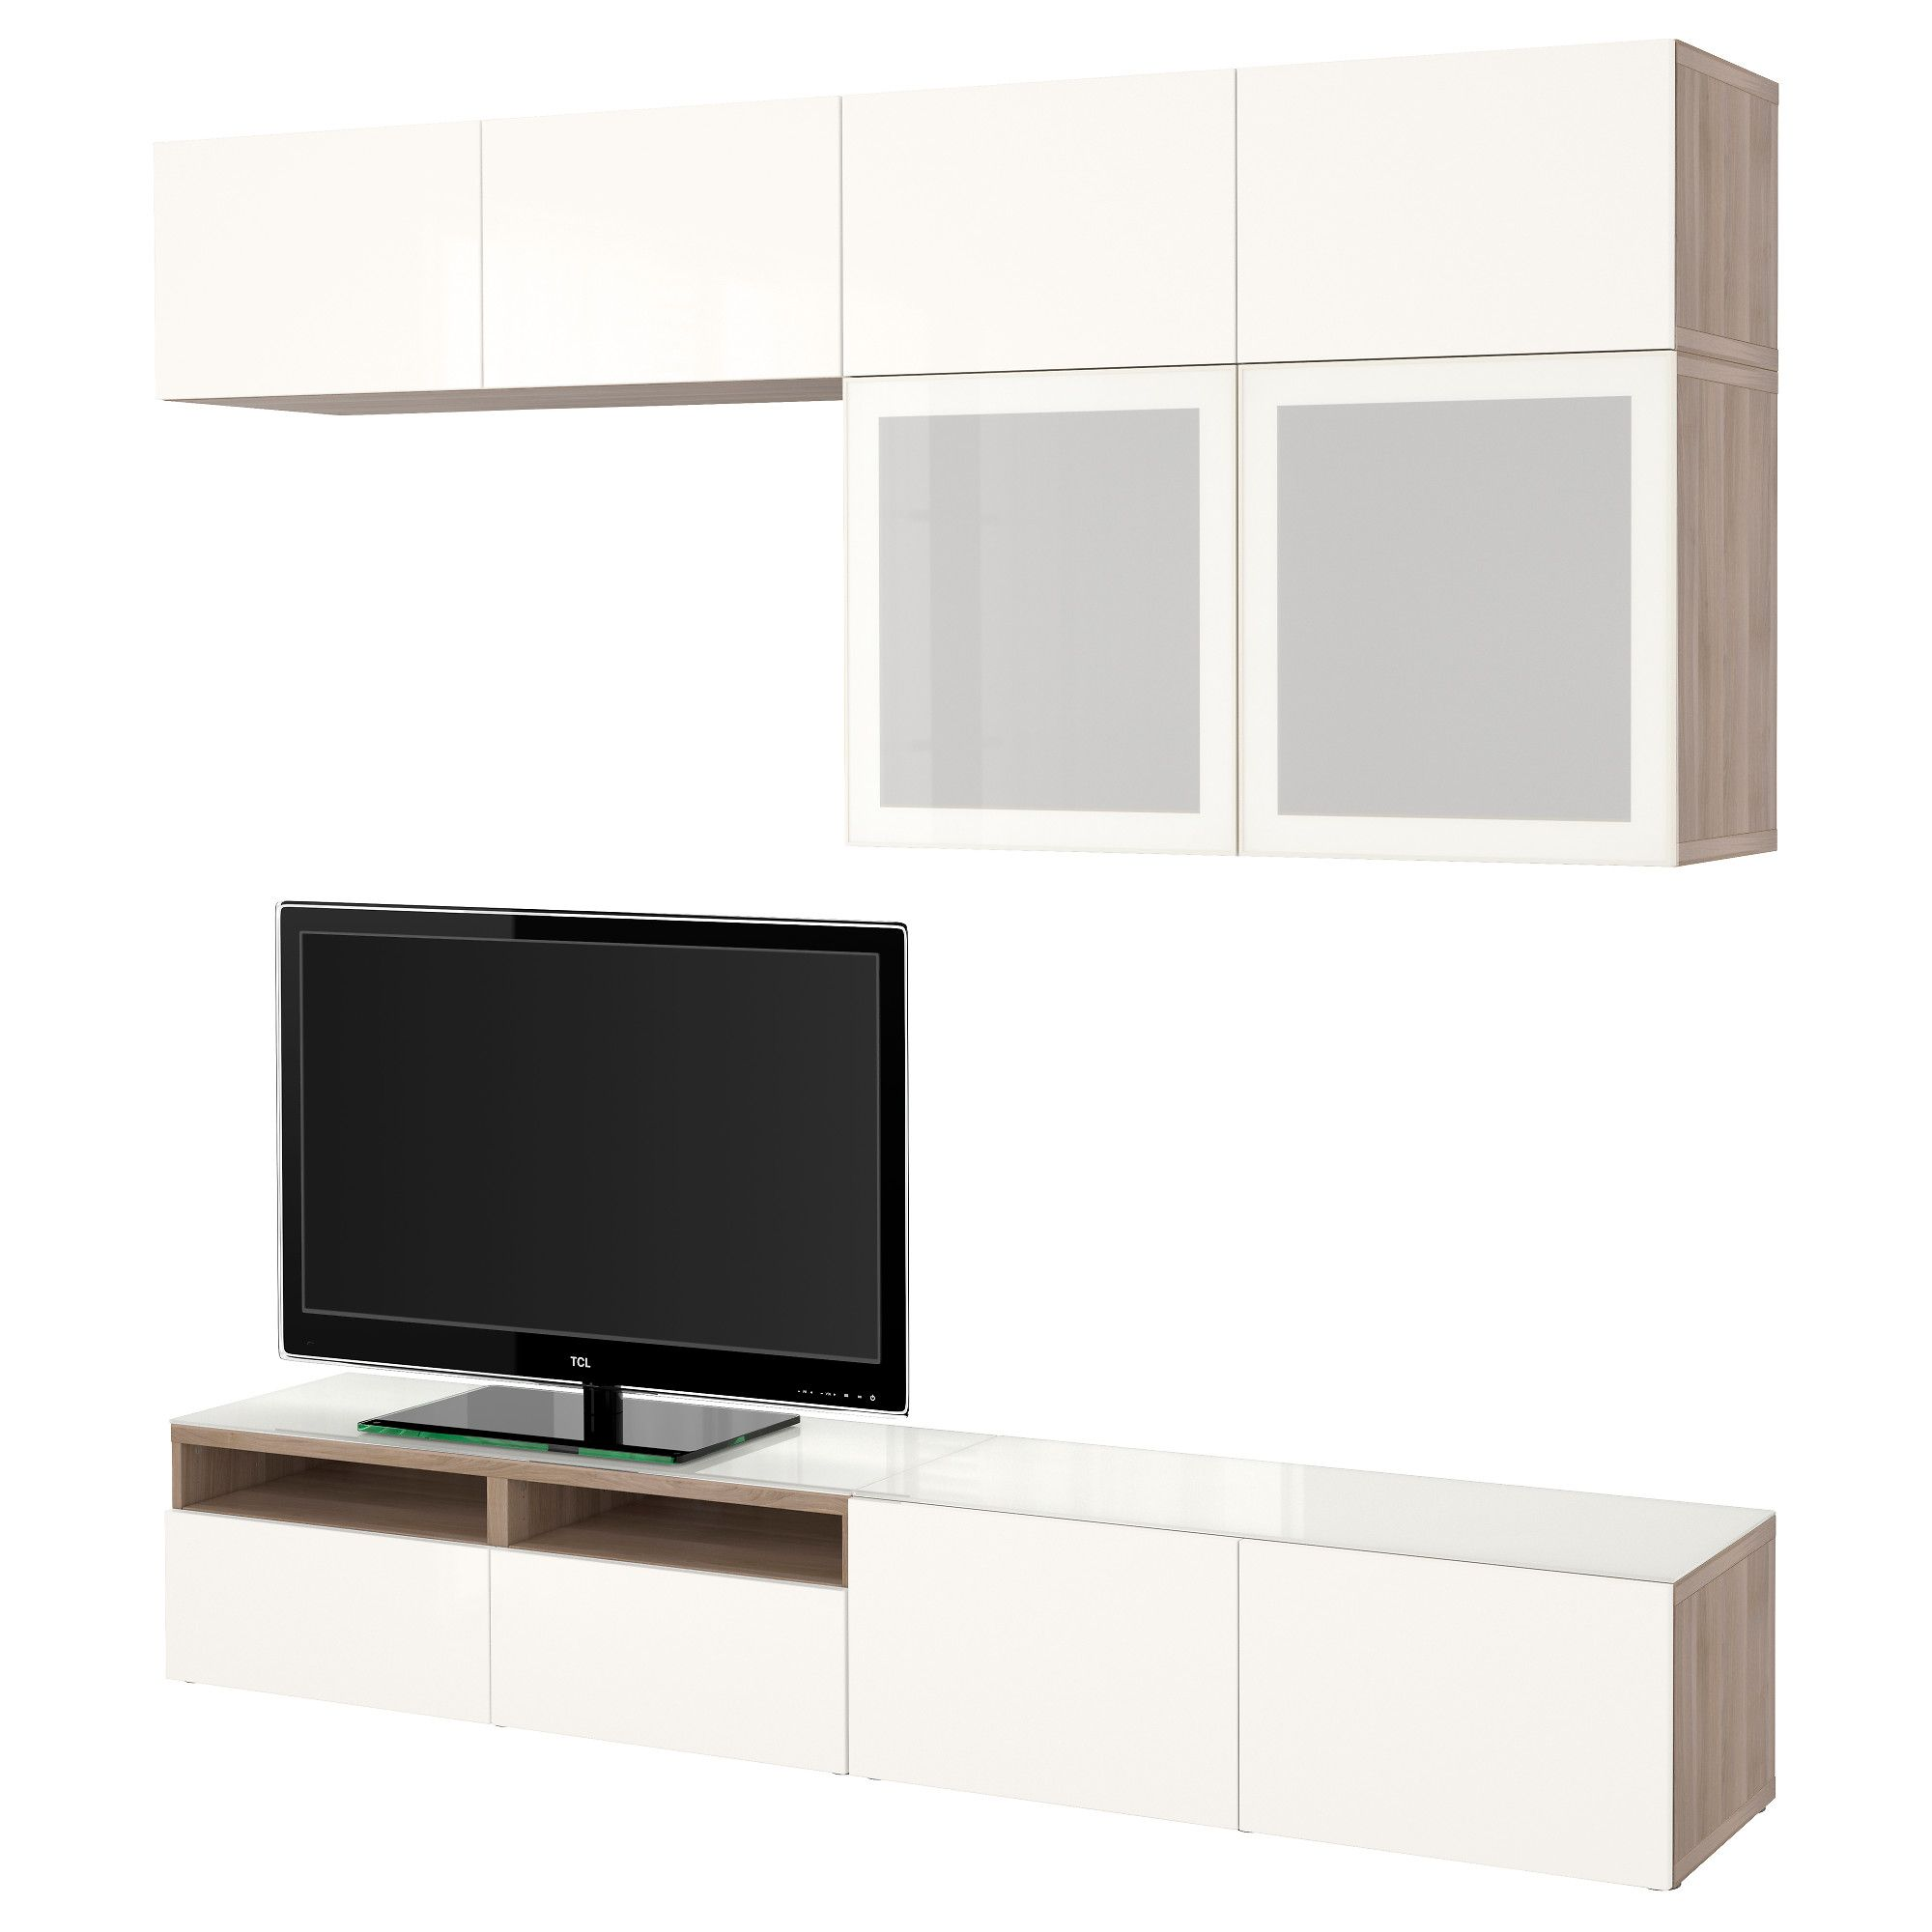 Budget Entertainment Unit Ikea Besta And Lack Shelves Storage  # Ikea Meuble Tv Besta Burs